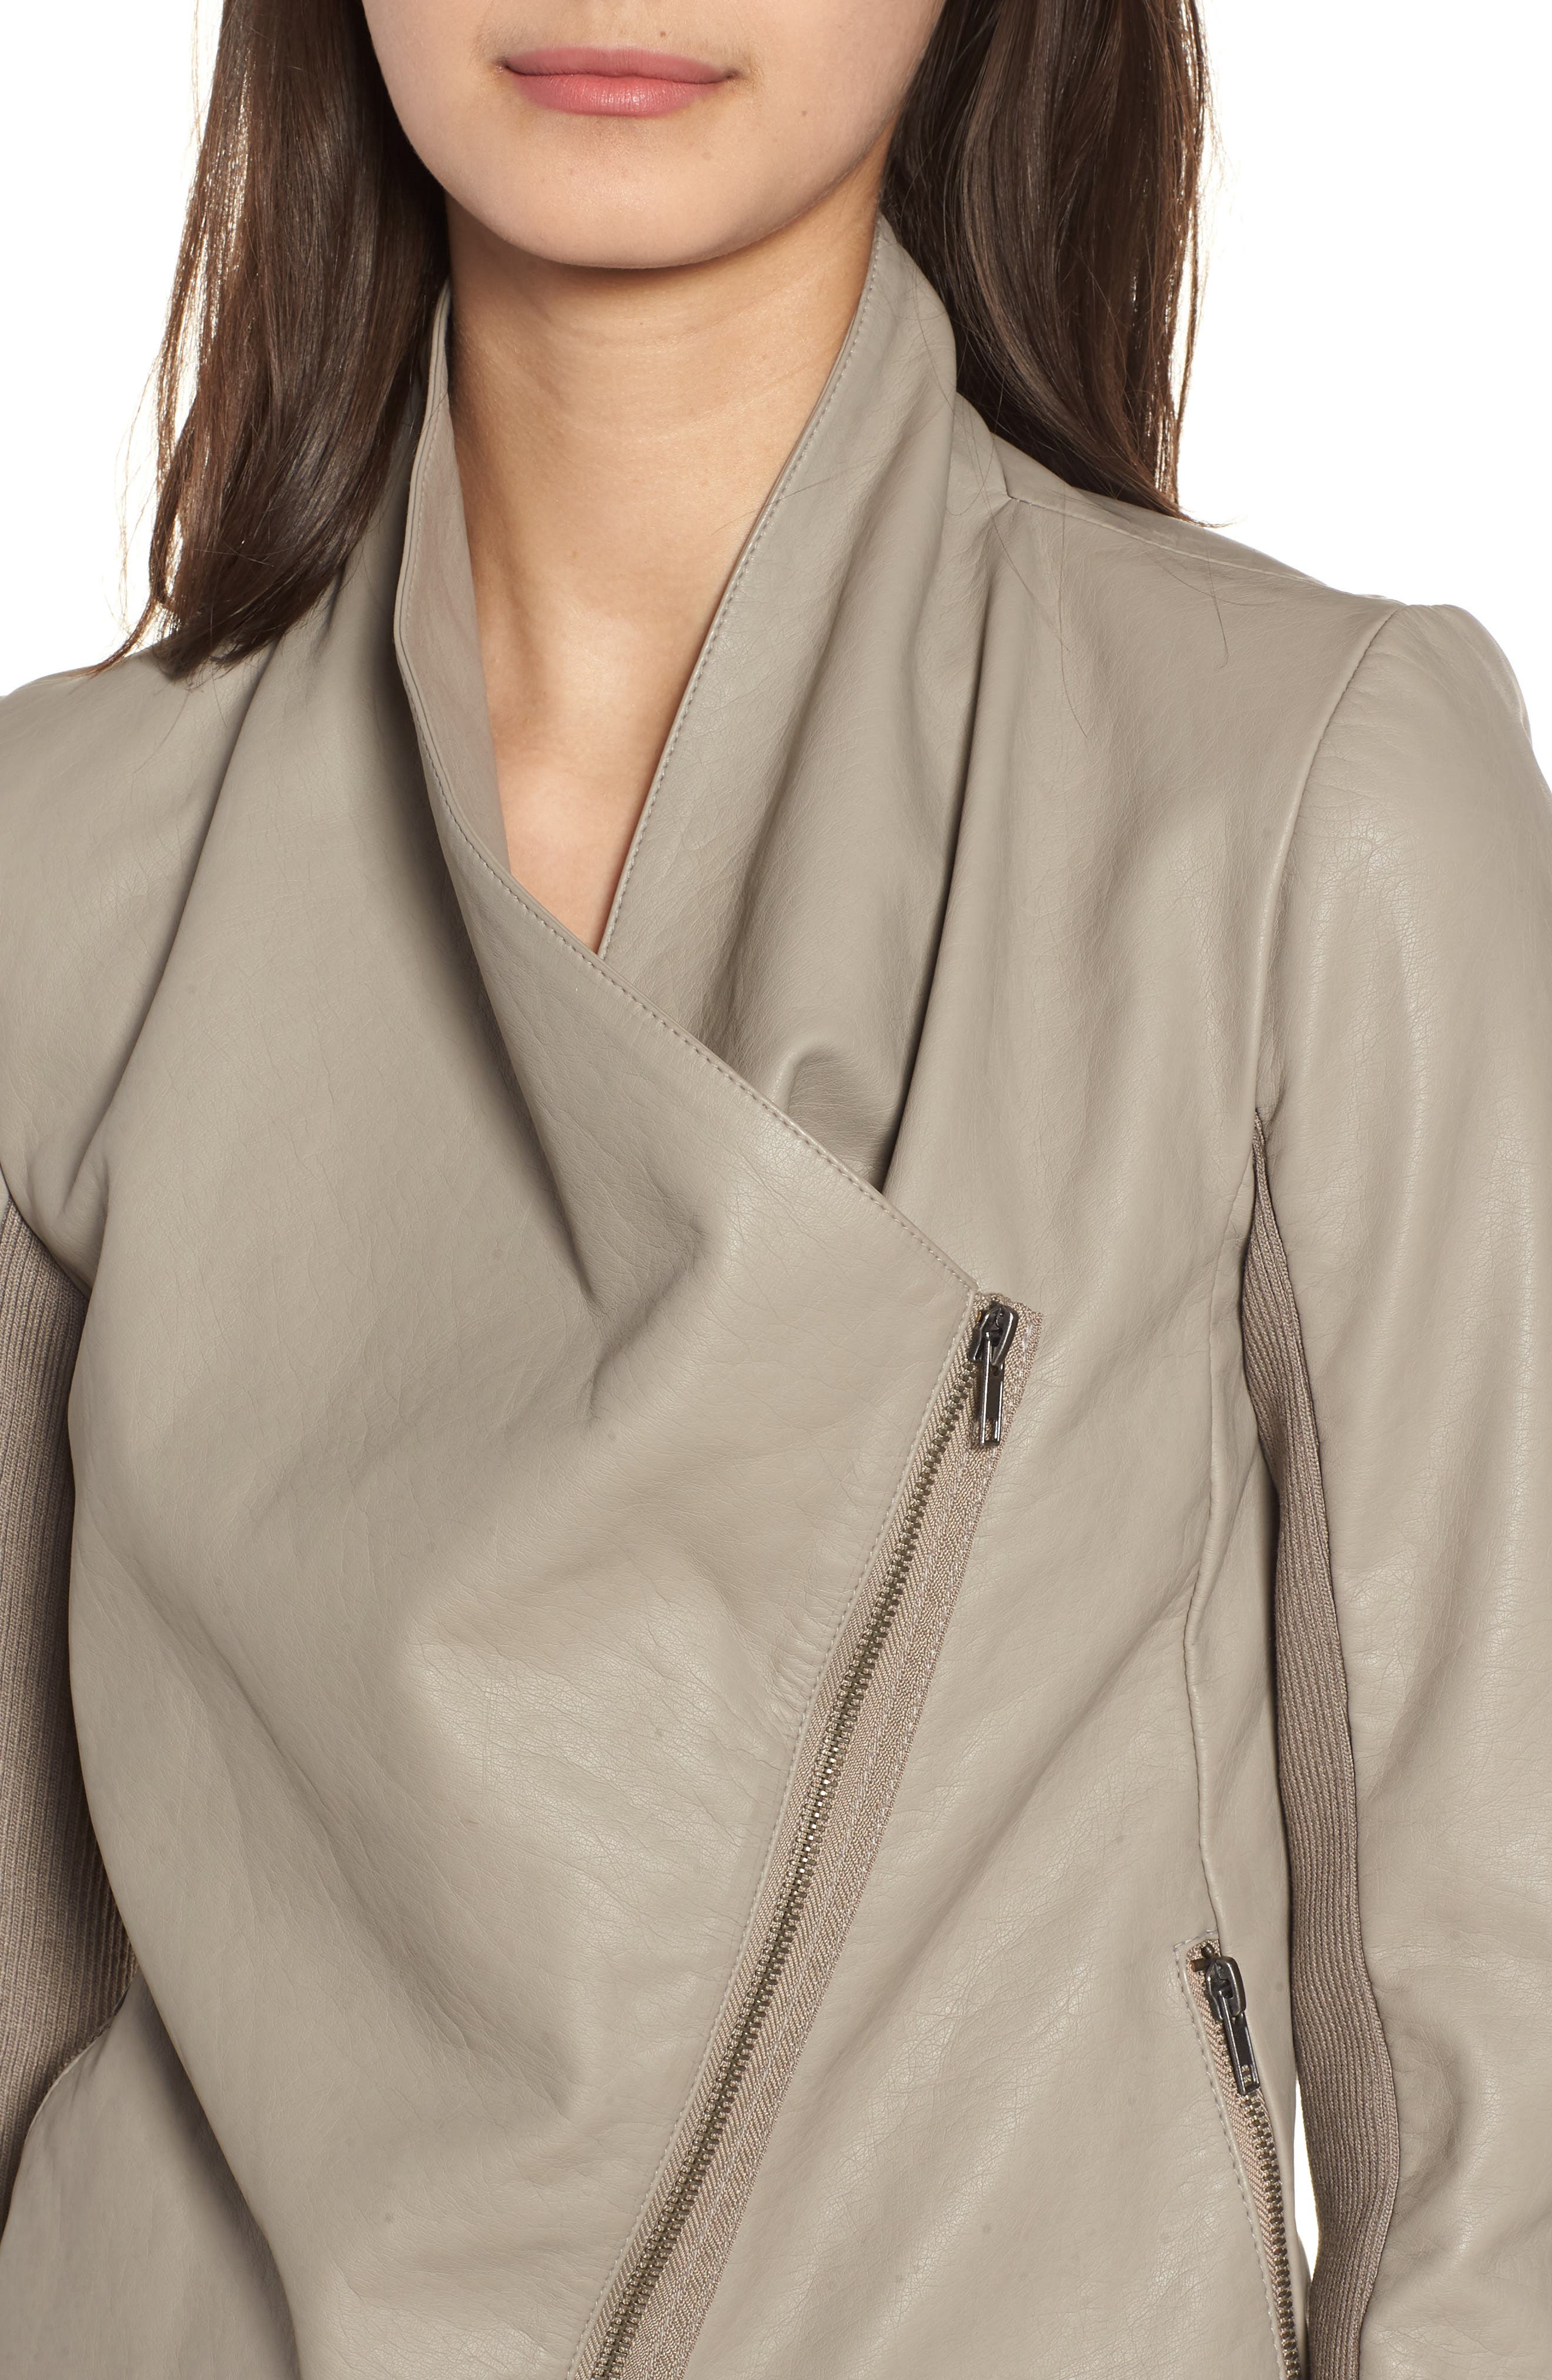 Gabrielle Faux Leather Asymmetrical Jacket,                             Alternate thumbnail 4, color,                             TOFFEE